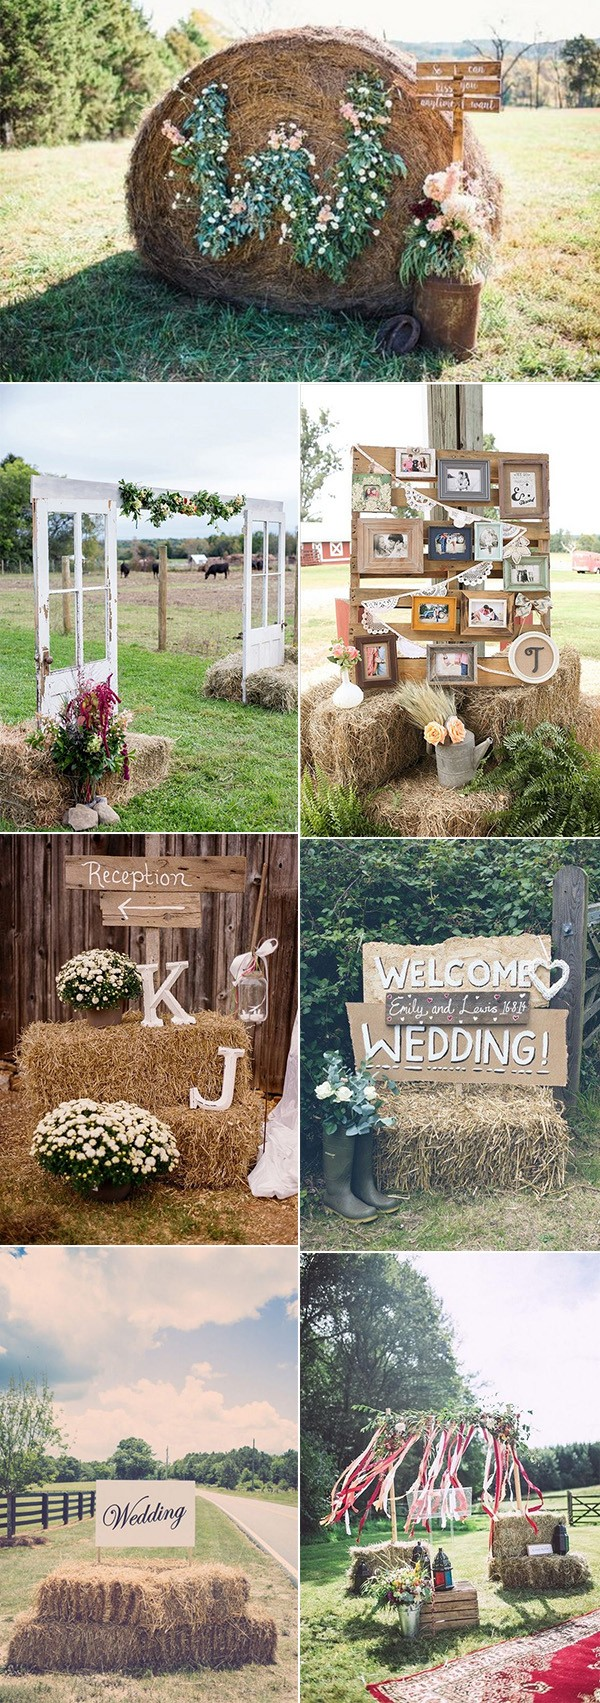 rustic budget wedding decoration idea with hay bales